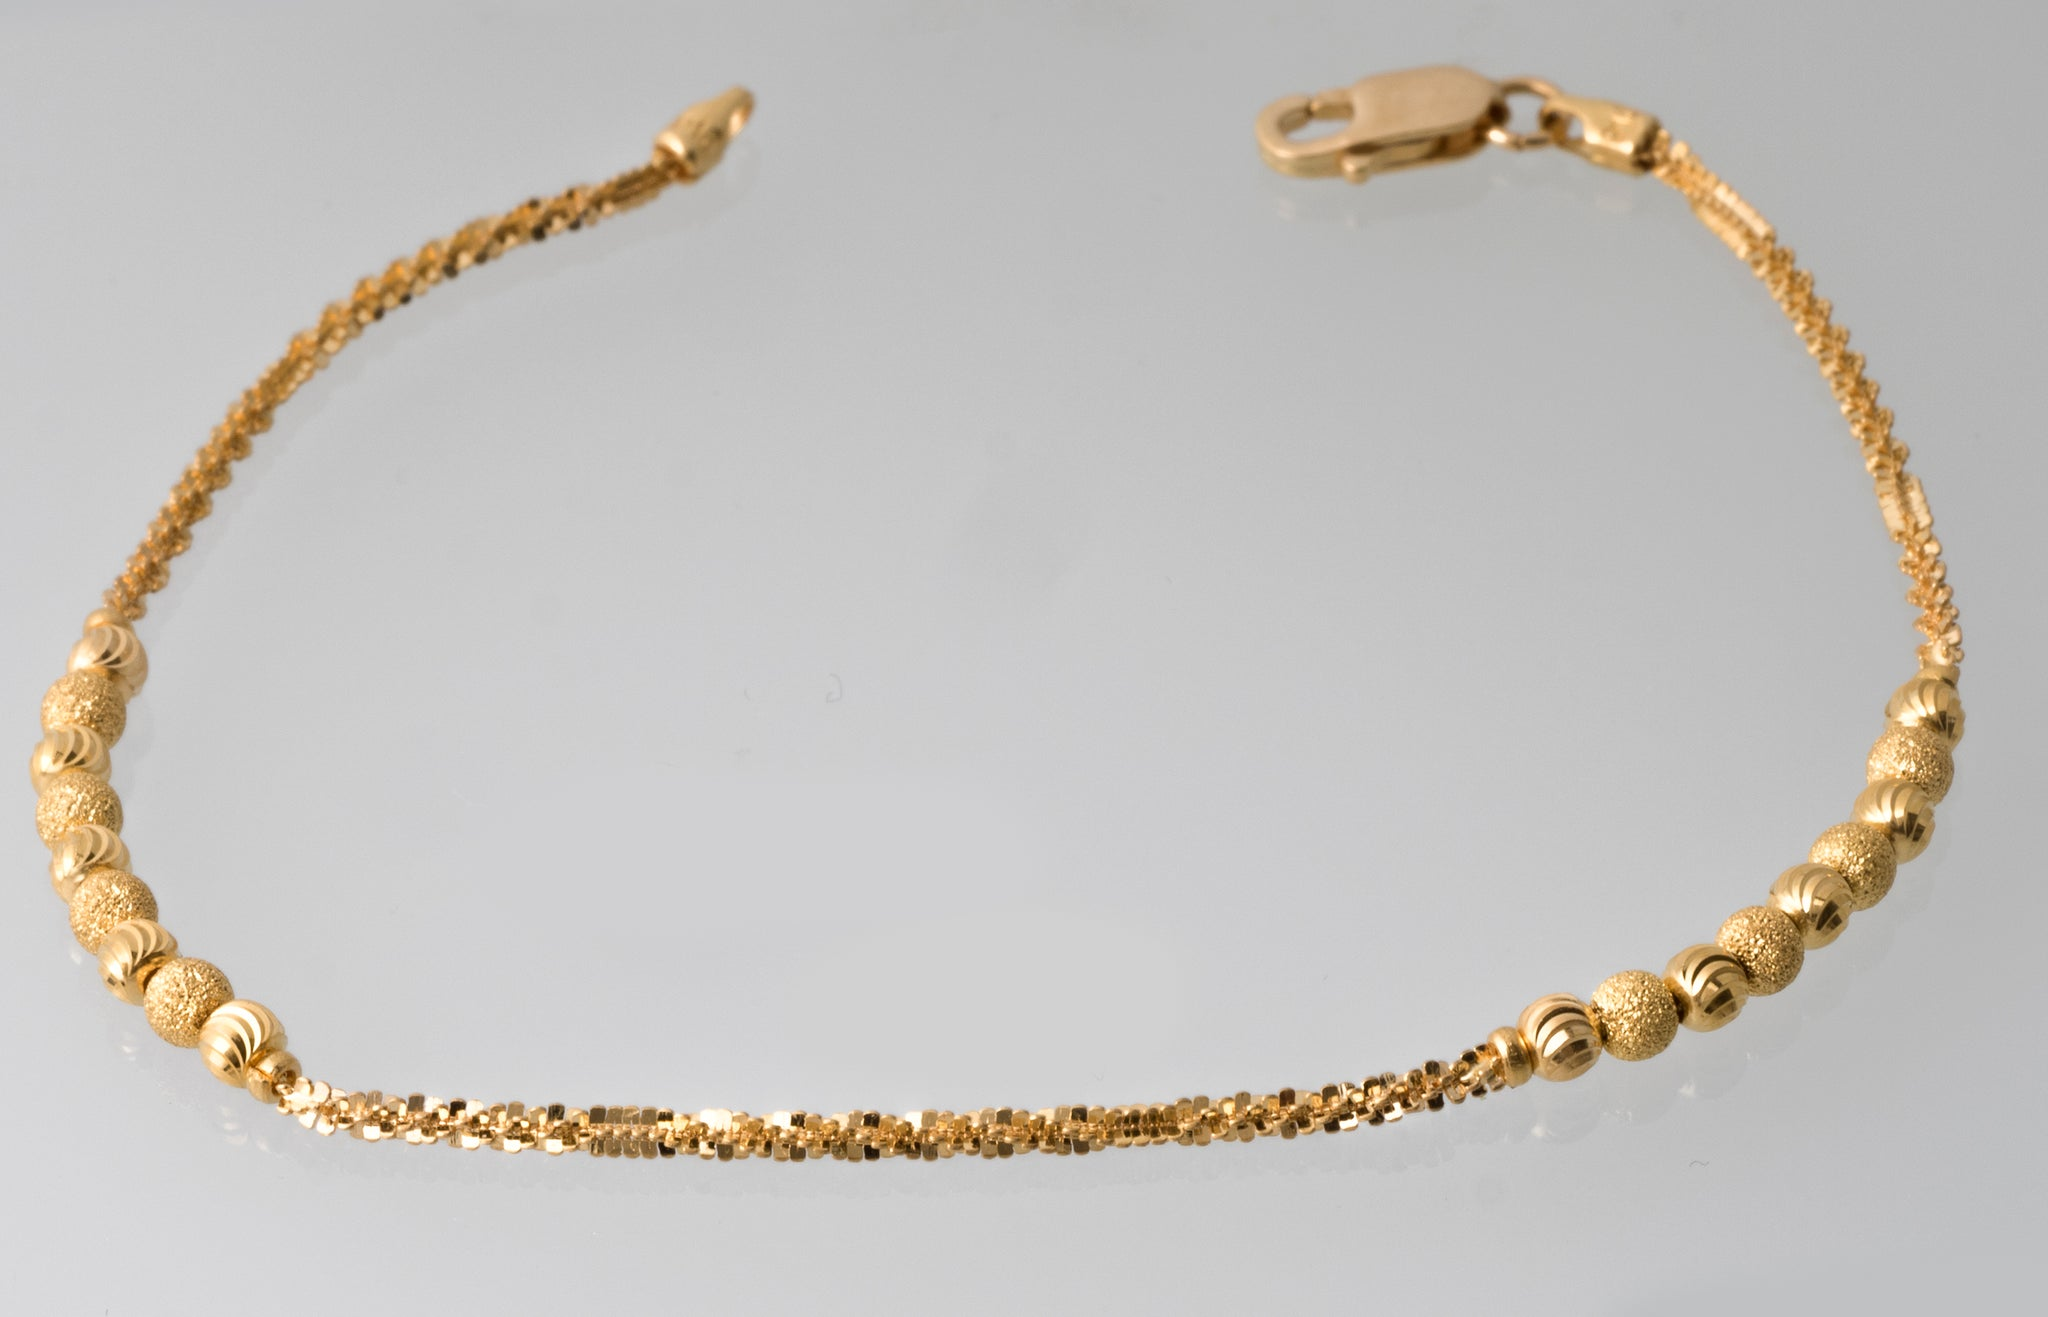 22ct Gold Bracelet with Diamond Cut Design (4.5g) LBR-7385